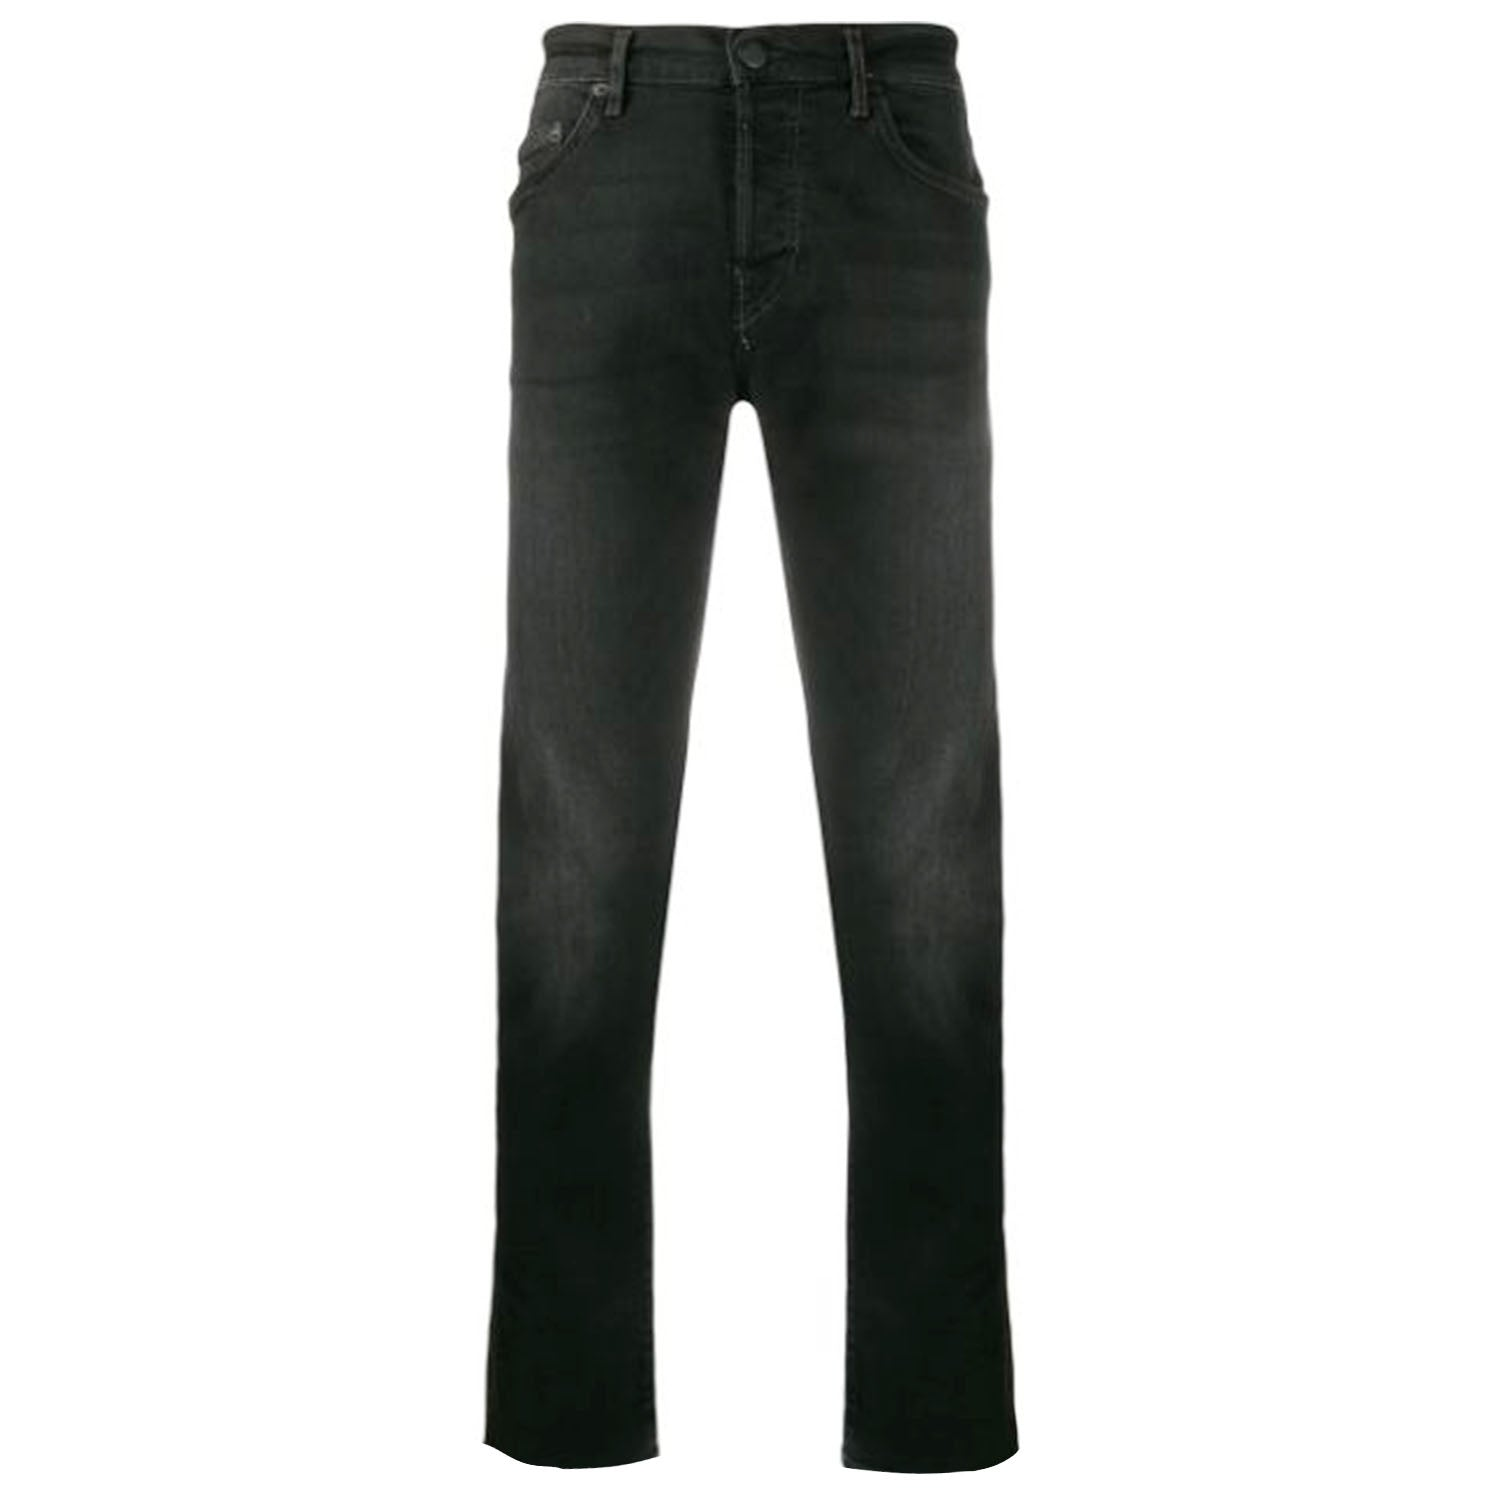 True Religion Rocco Black Jeans